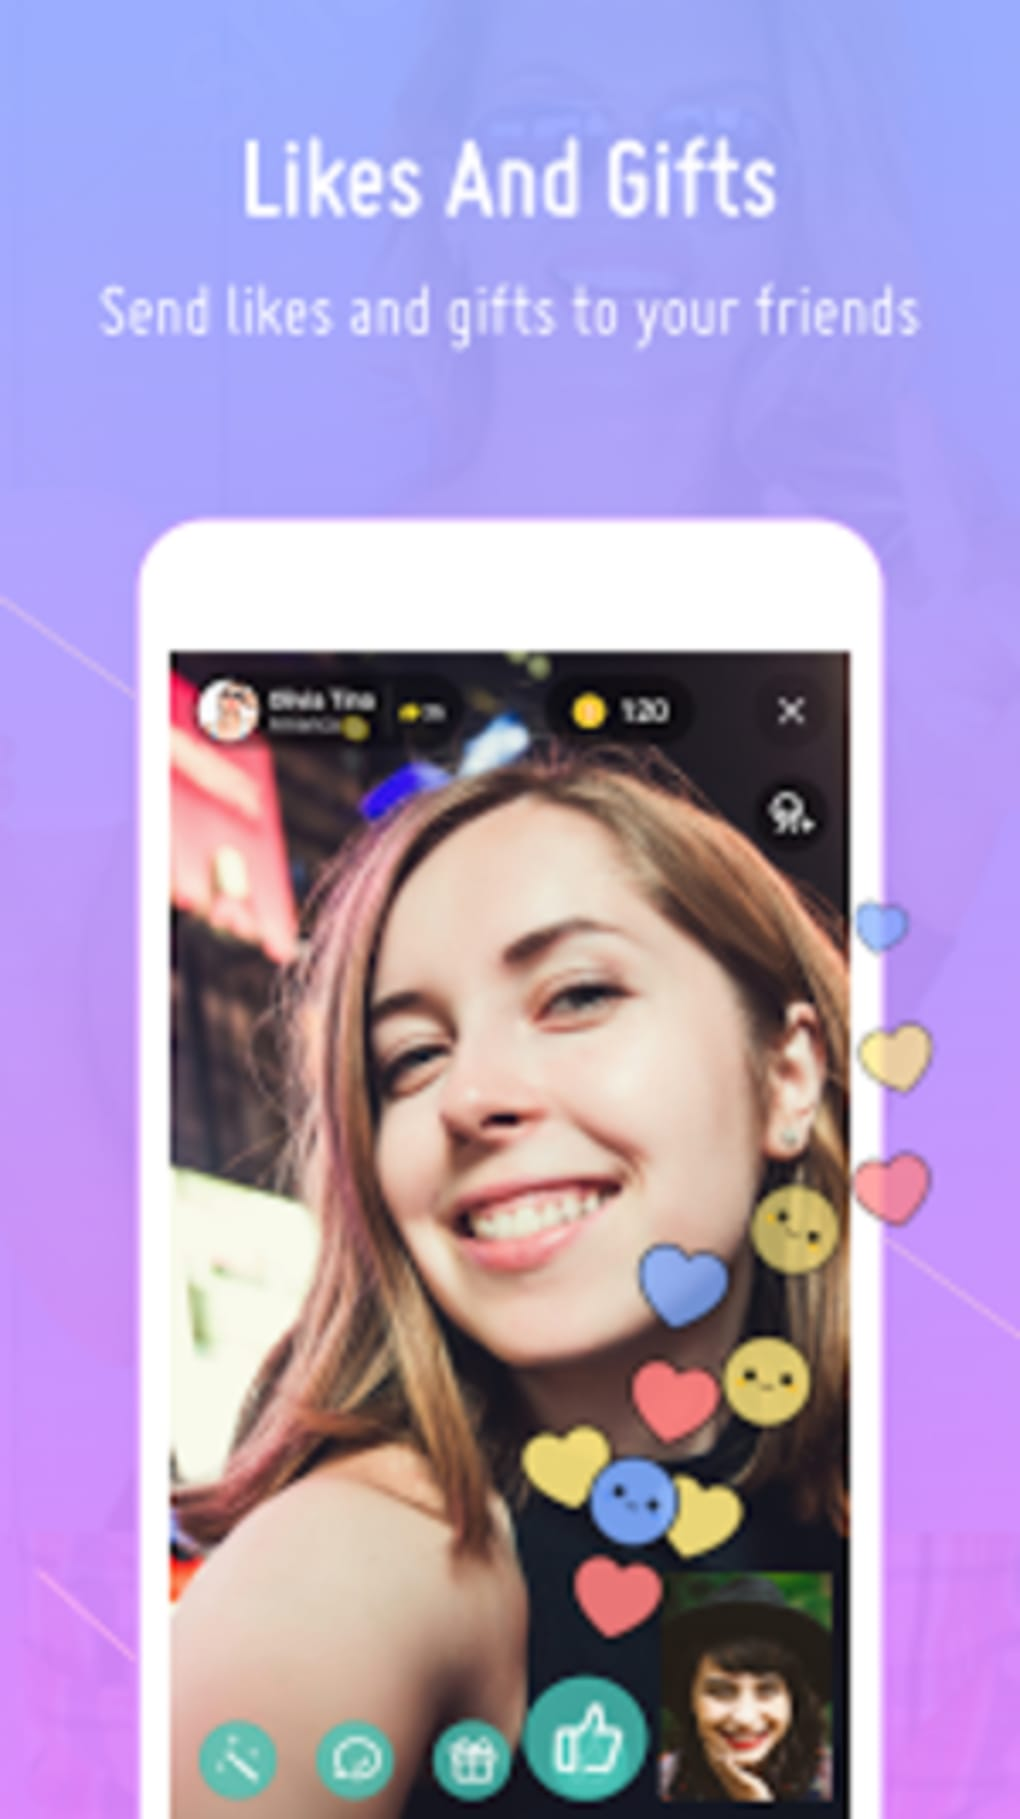 Meet – Random Video Chat for Android - Download